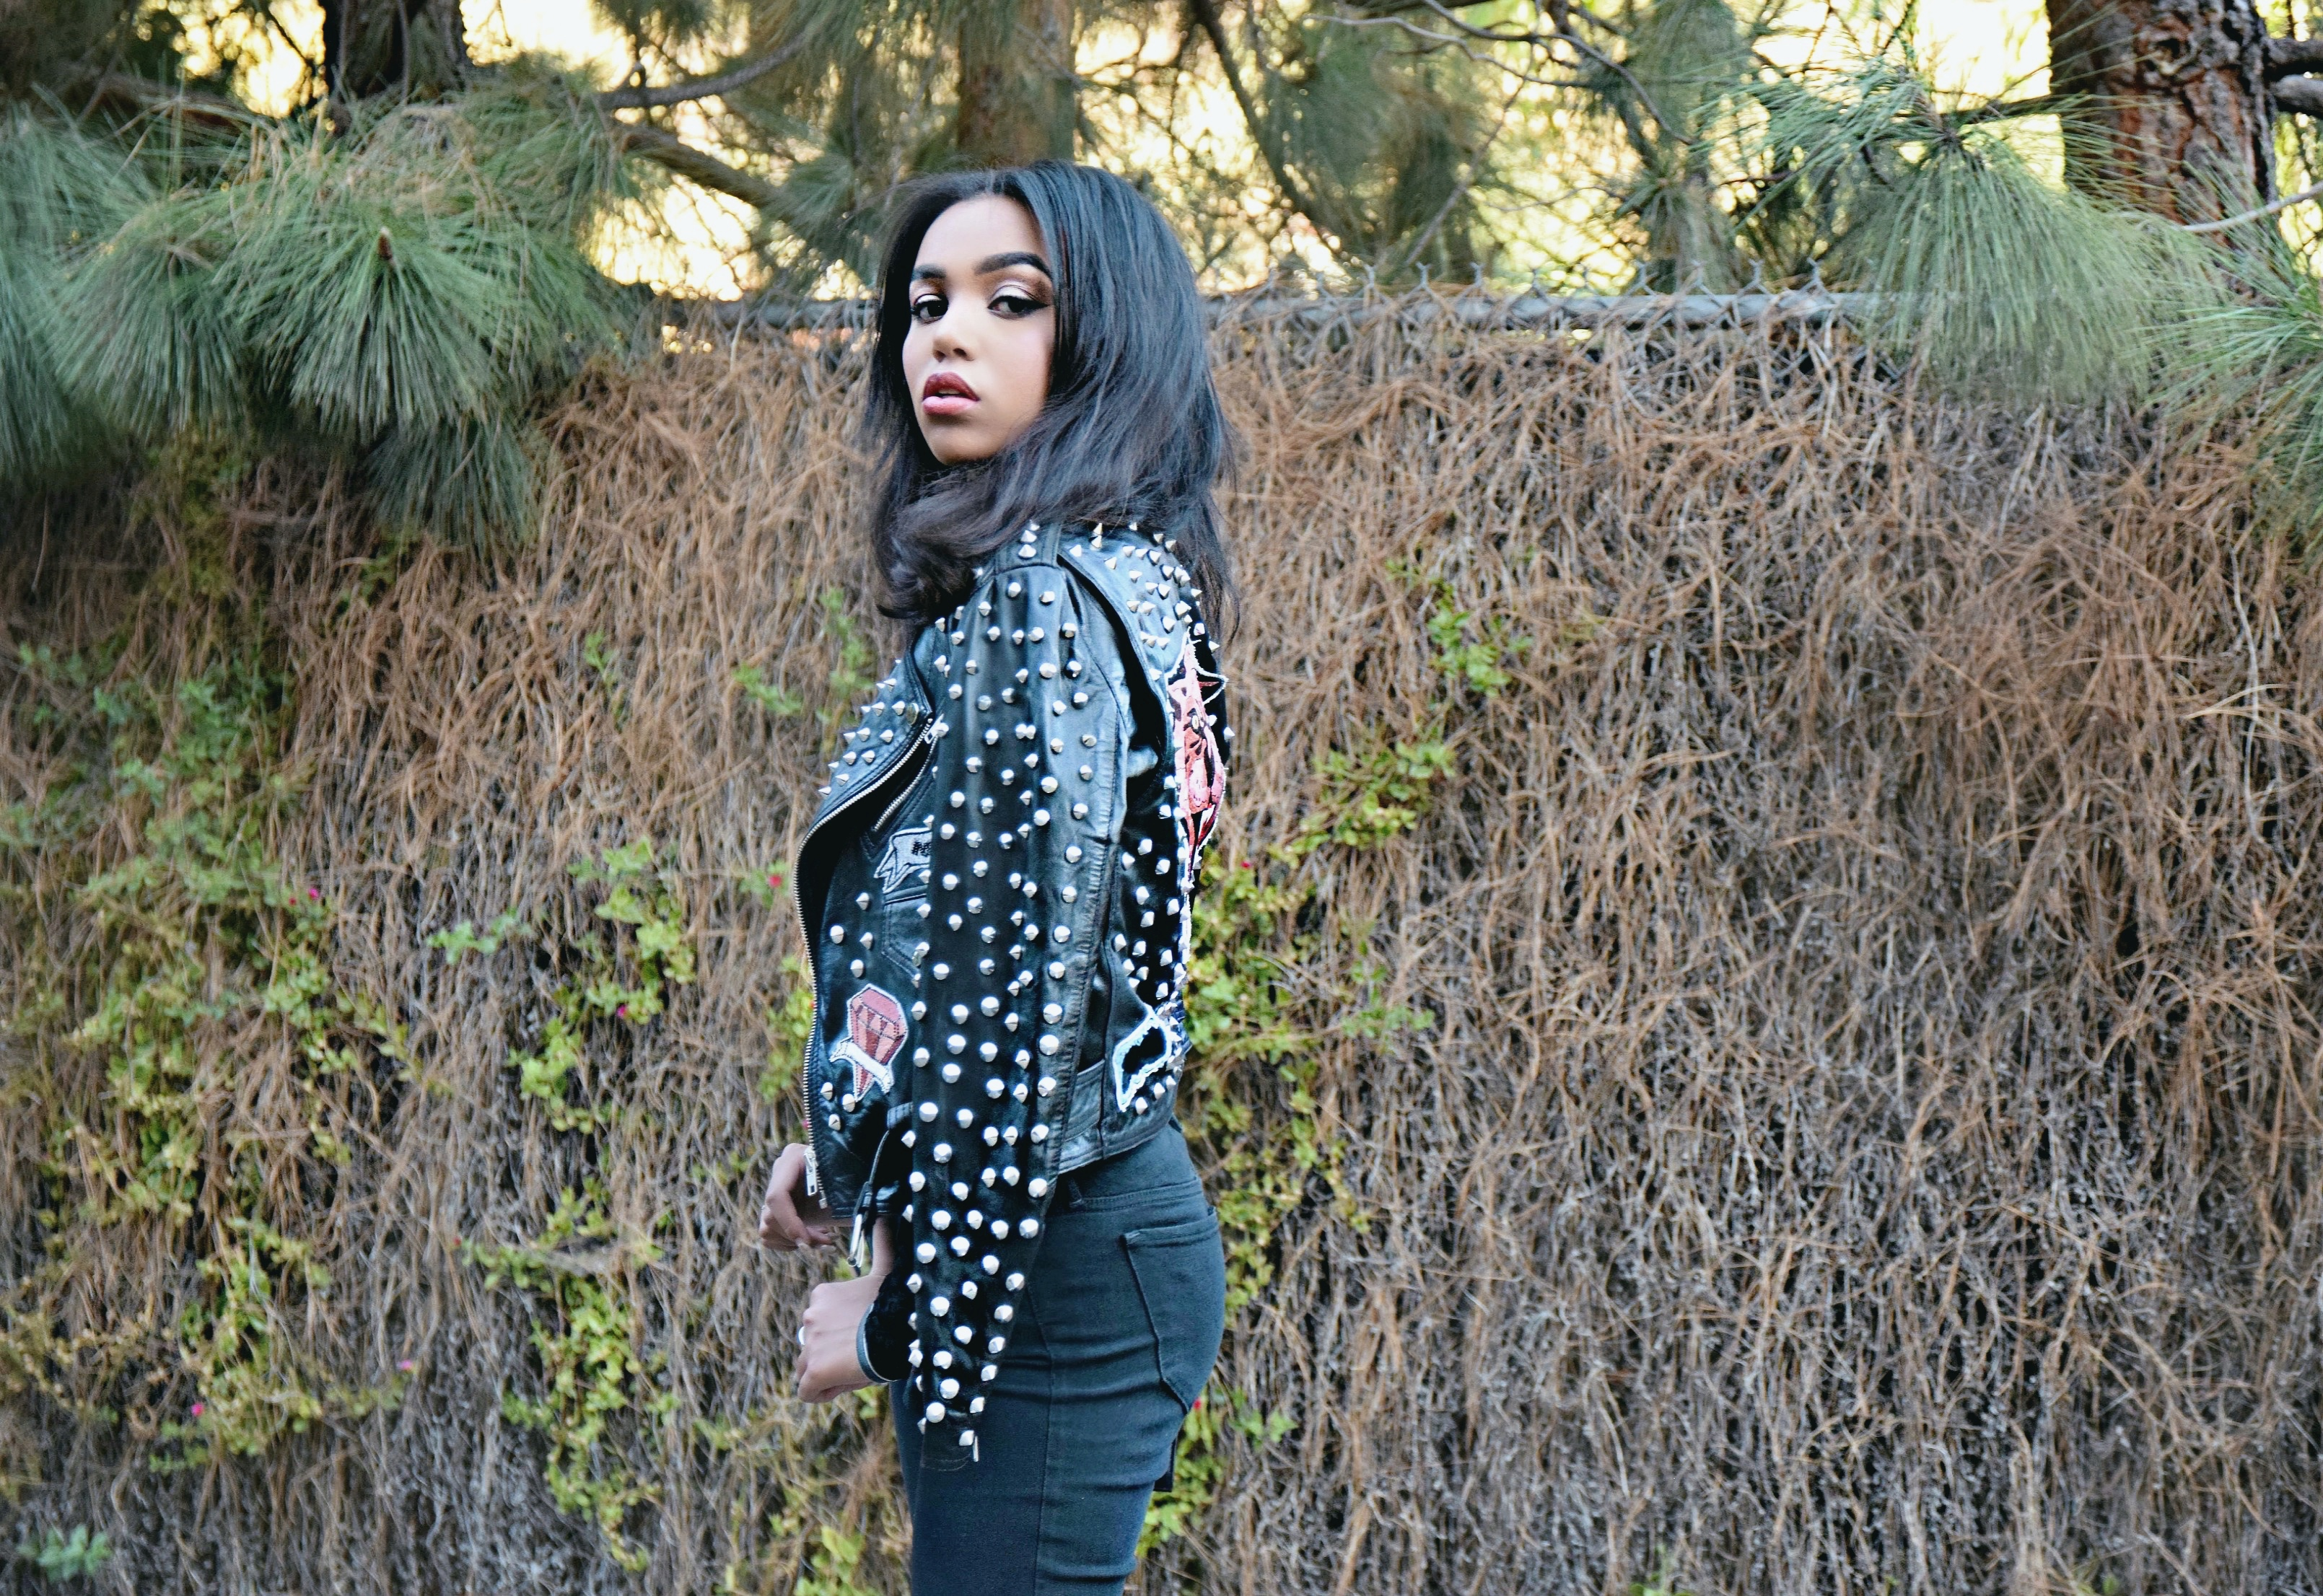 Zappos.com The Perfect Fall Pairing // Steve Madden x Joe's Jeans // Blue Velvet Steve Madden Ankle Booties // Cropped Black Ripped Knee Joe's Jeans // YSL Lipstick Bag // Suki + Solaine Top // Zara Studded Leather Jacket // Los Angeles Fashion Blogger Daphne Blunt: To Style, With Love